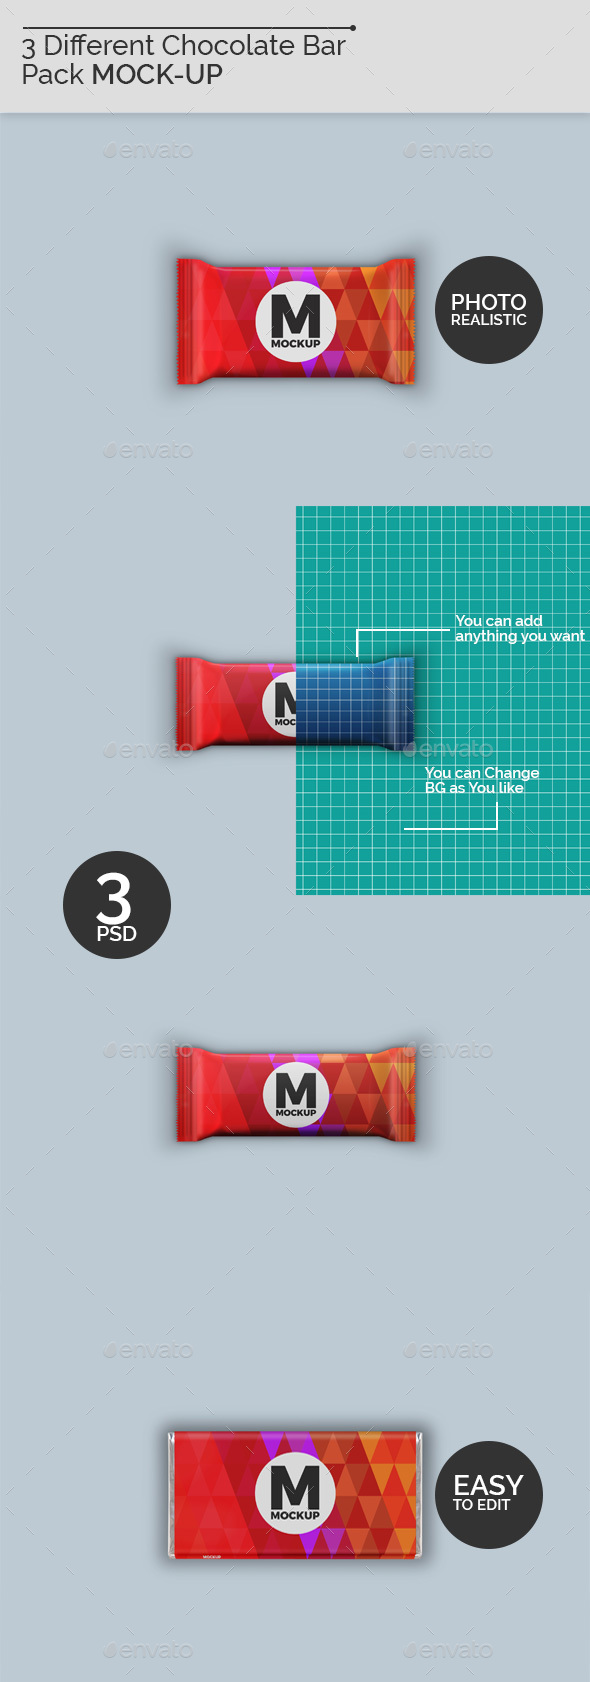 3 Chocolate Bar Packaging Mockup - Food and Drink Packaging